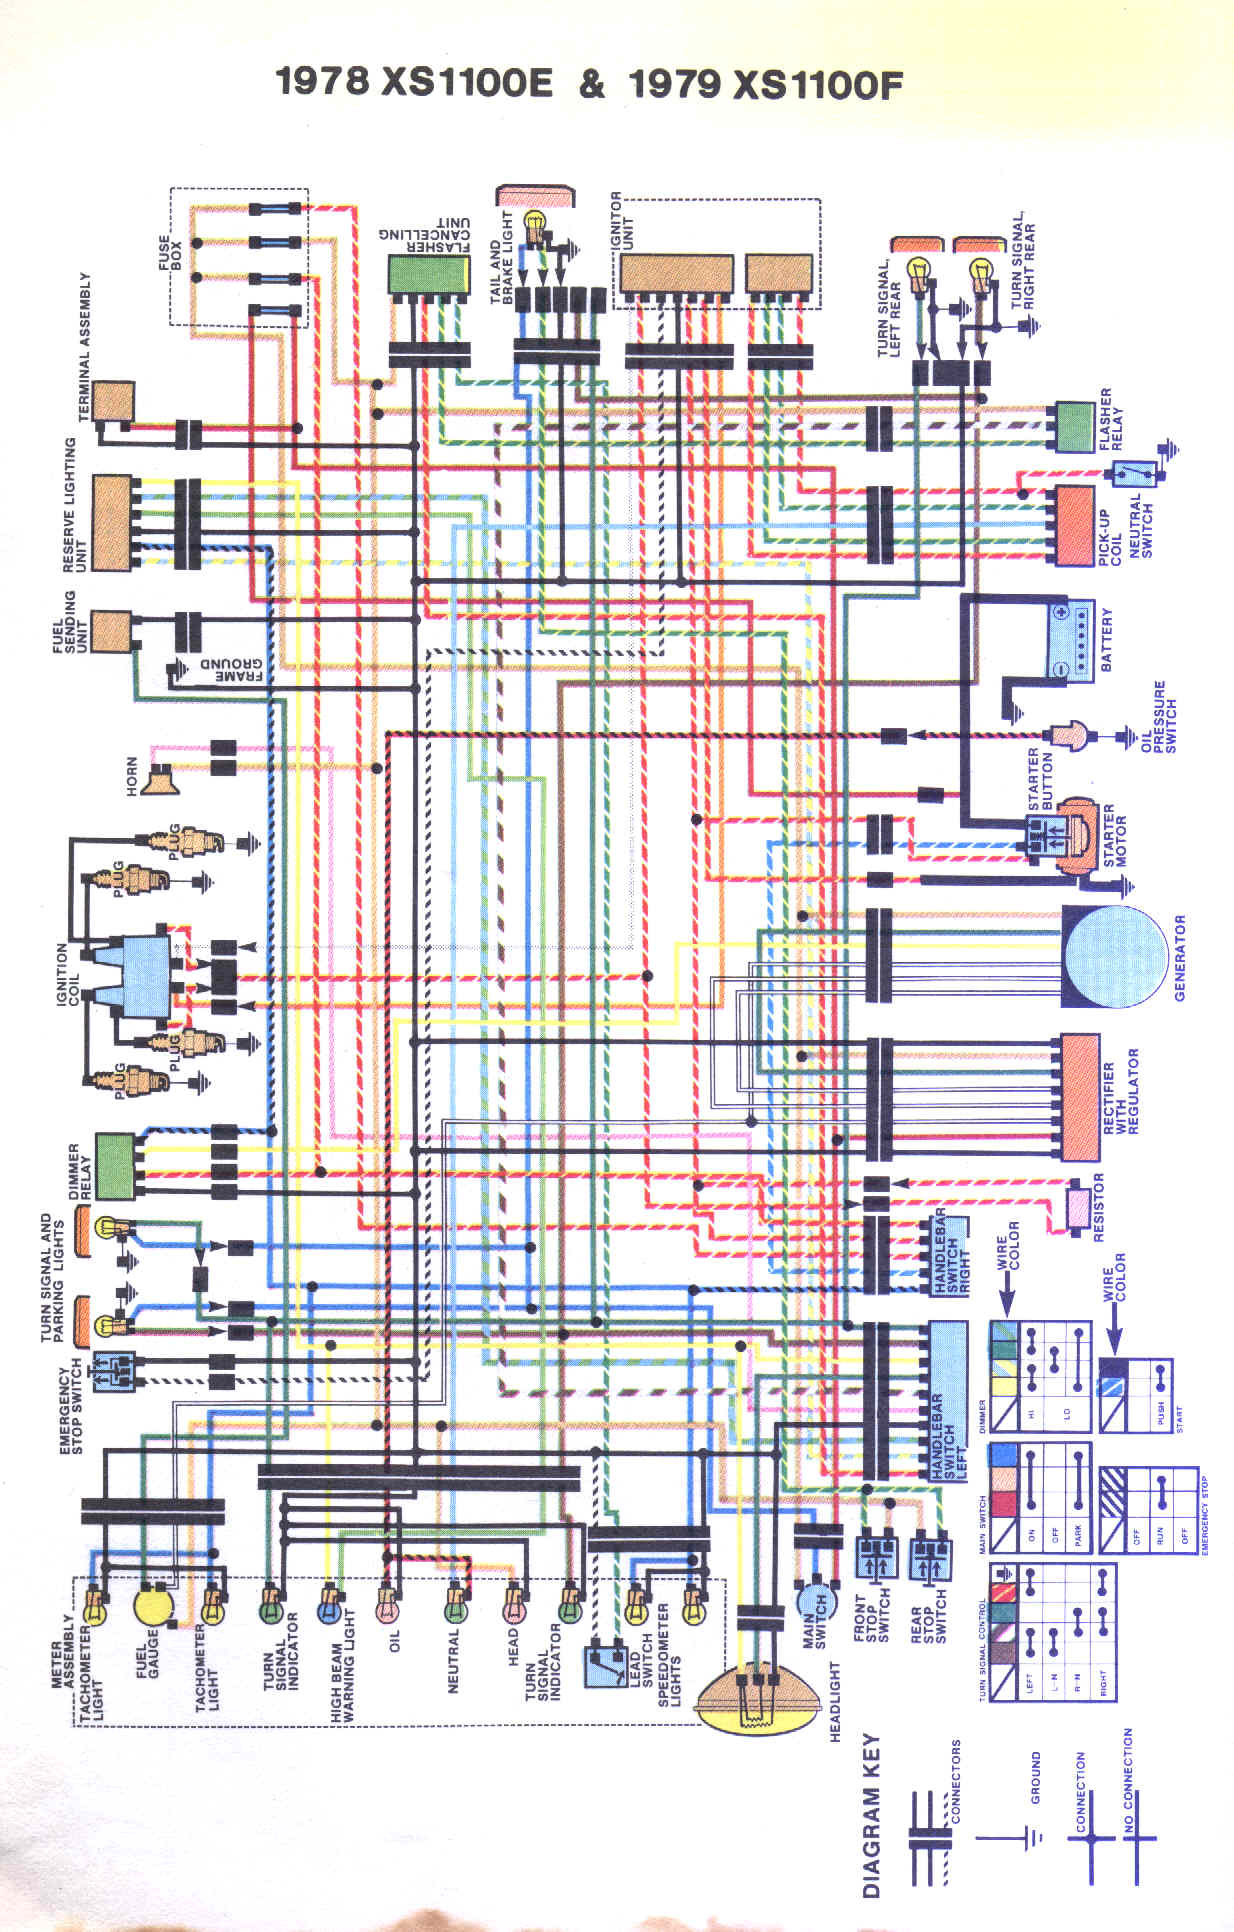 Wiring Diagrams Honda Ct 90 K 1 Diagram 197879 Xs11